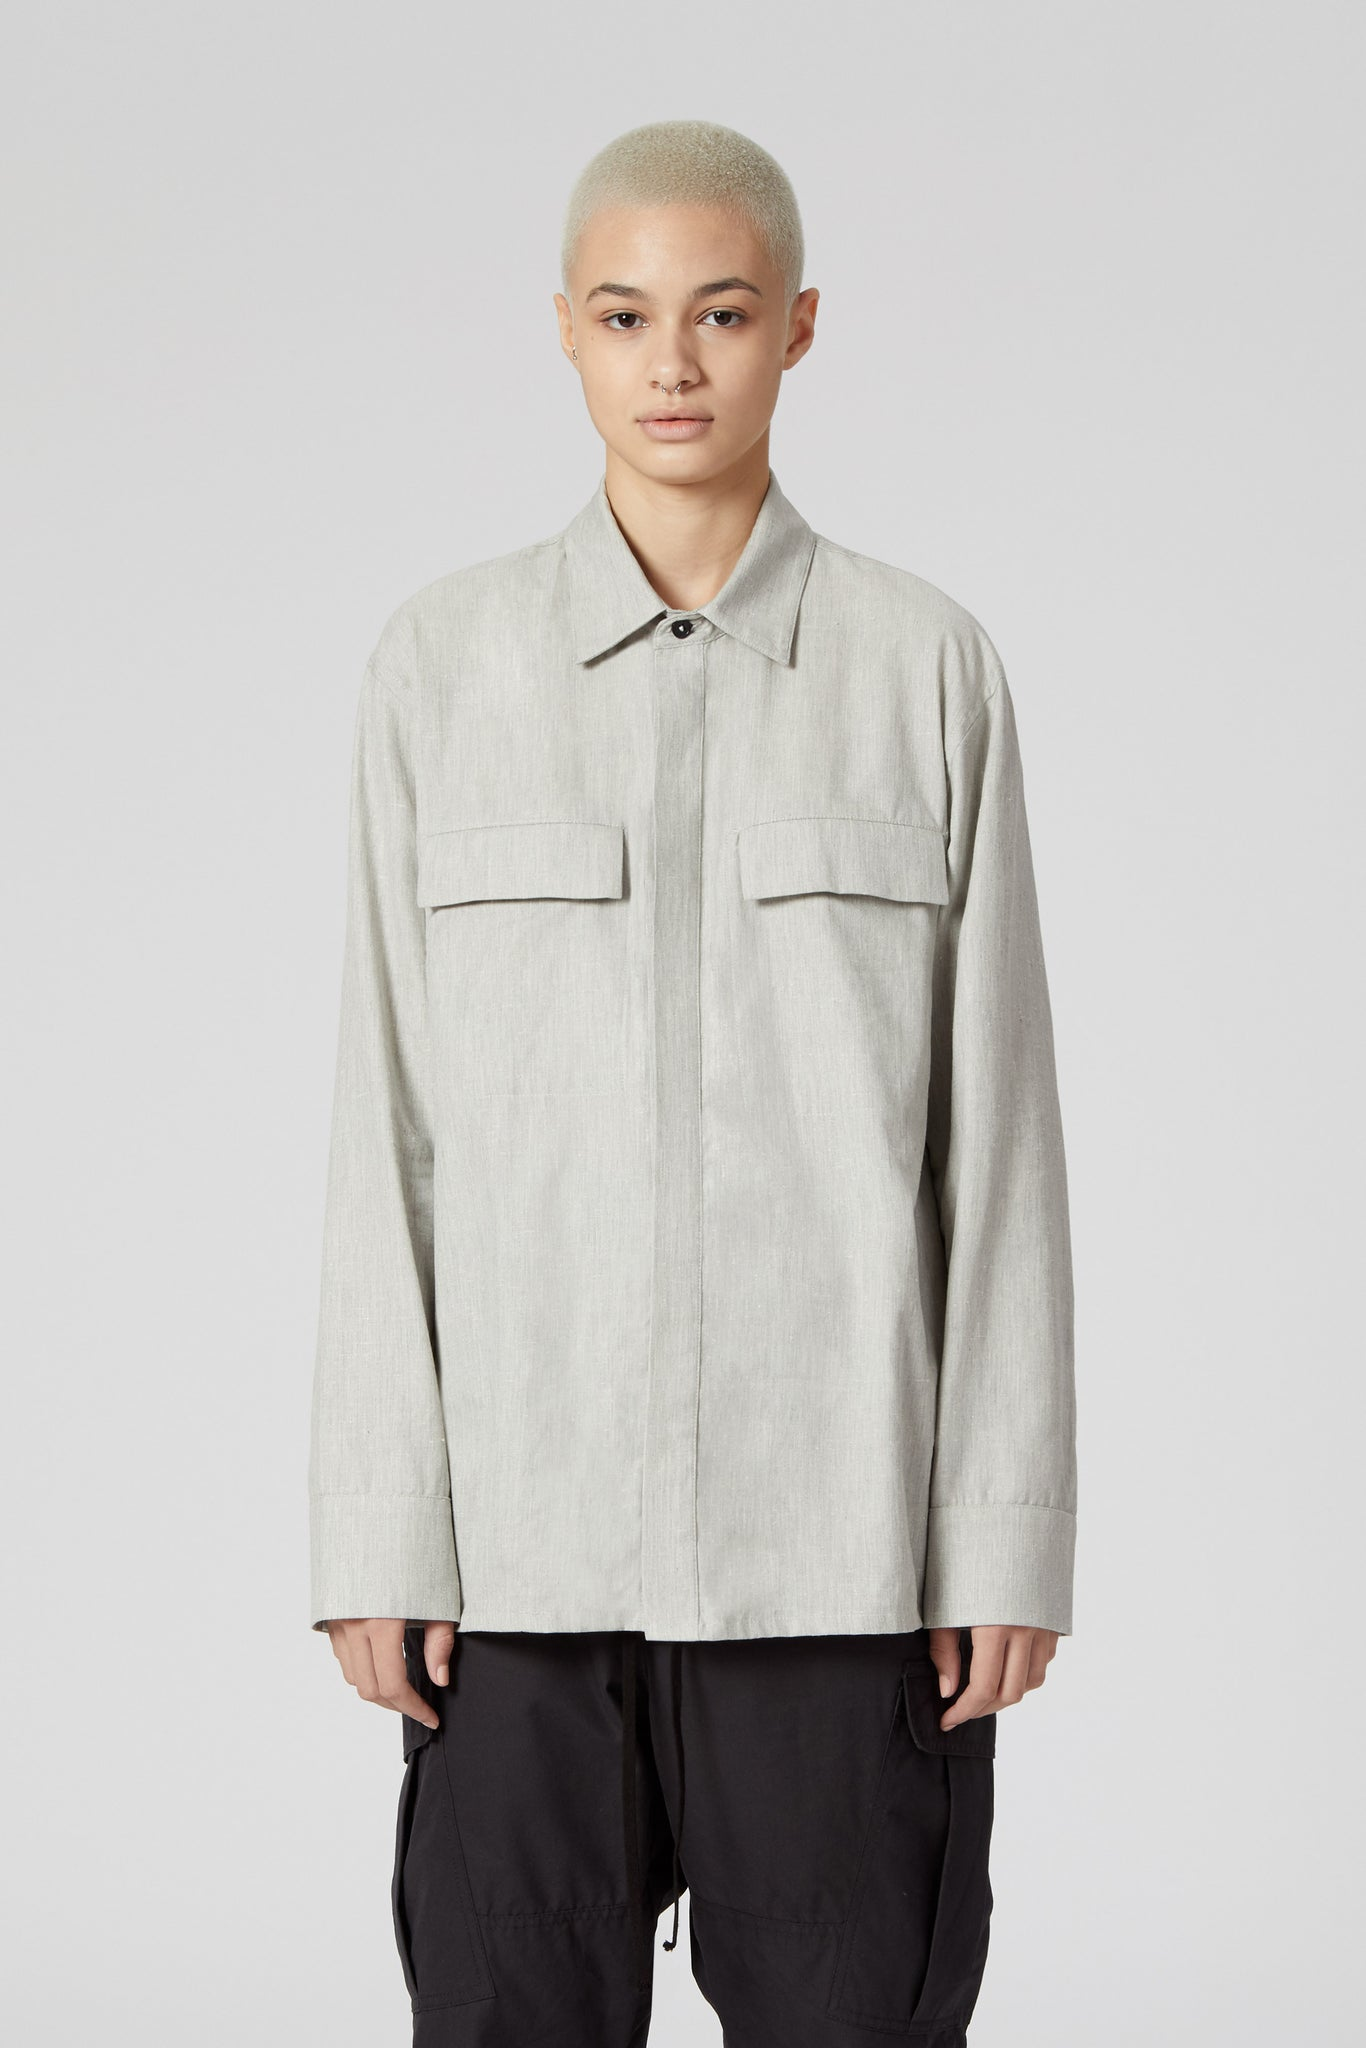 Mist Grey Button Down